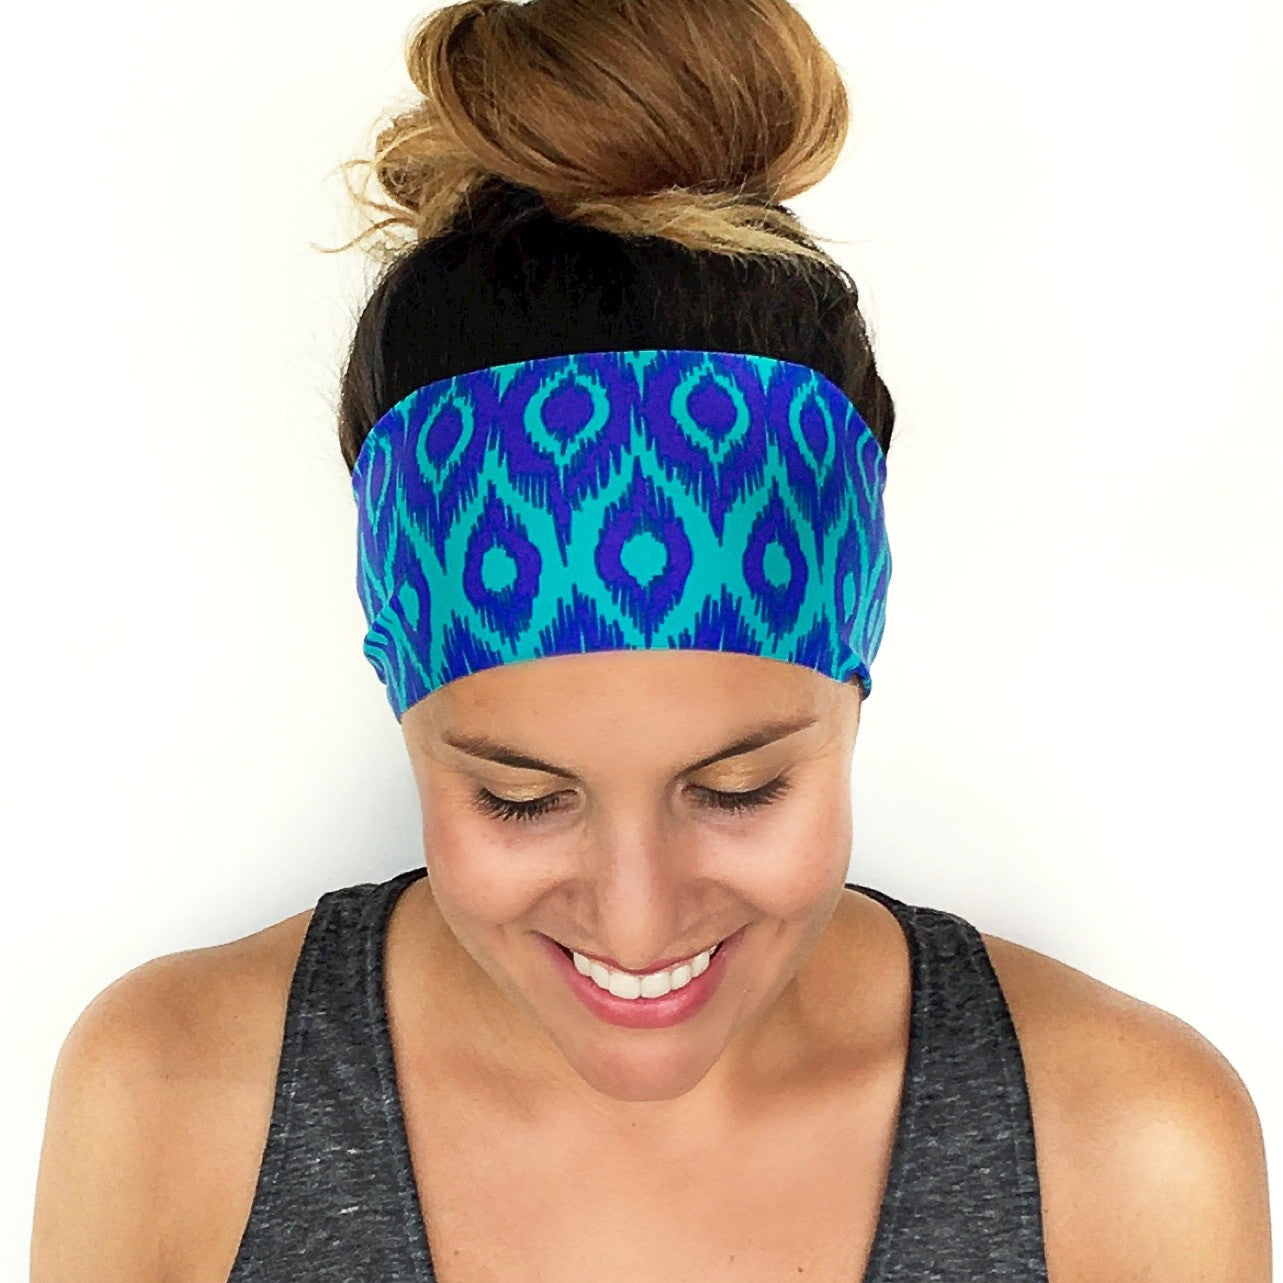 Palo Alto Print Workout Headband